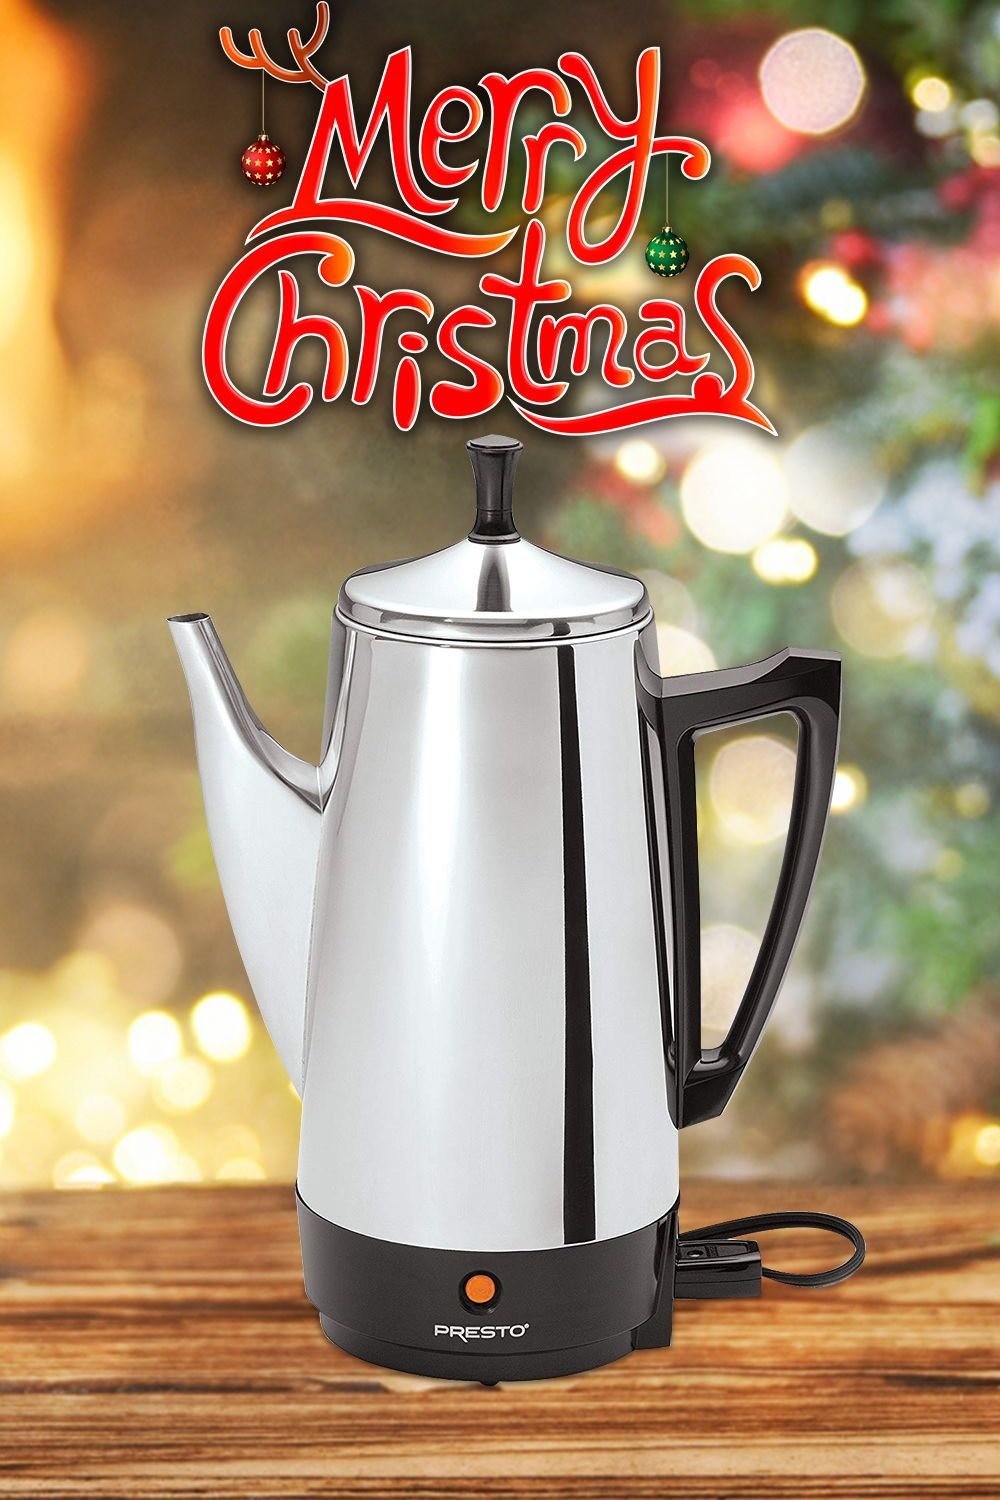 Top 10 Coffee Percolators Feb 2020 Reviews Buyers Guide With Images Percolator Coffee Stainless Steel Coffee Maker Percolator Coffee Maker